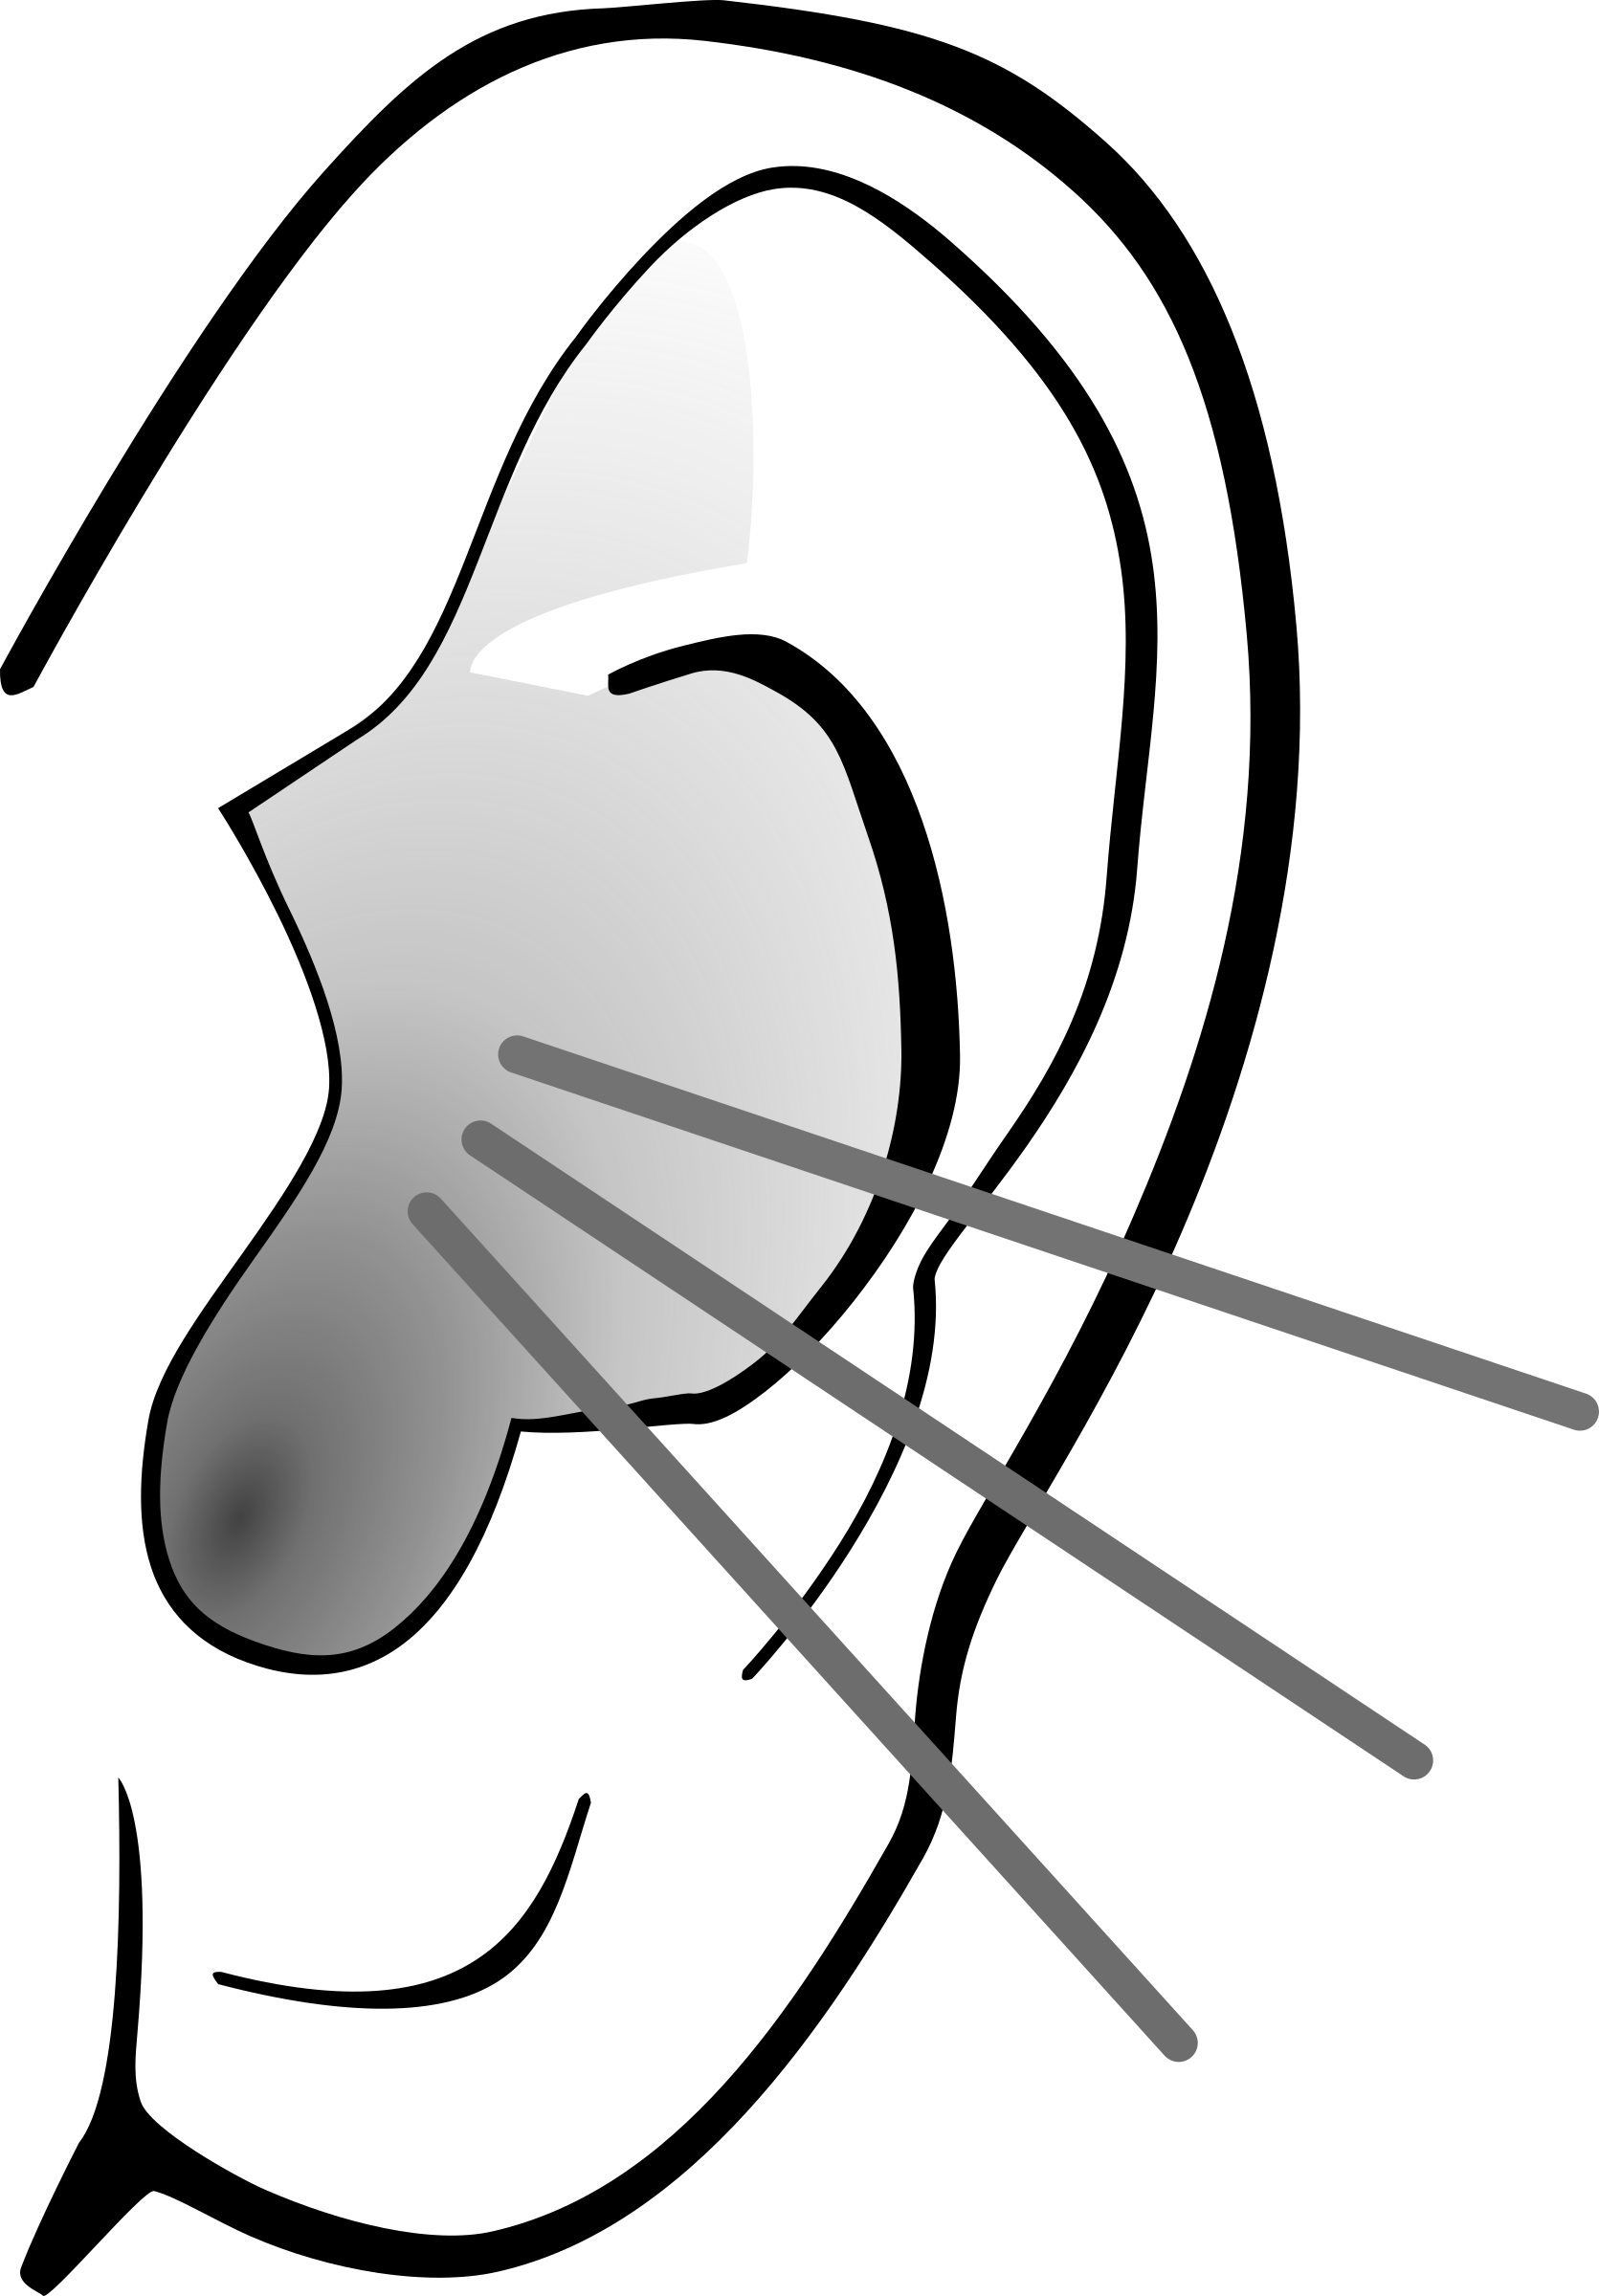 Listening Ear PNG Image - Free PNG Listening Ear - Ear Listening PNG HD